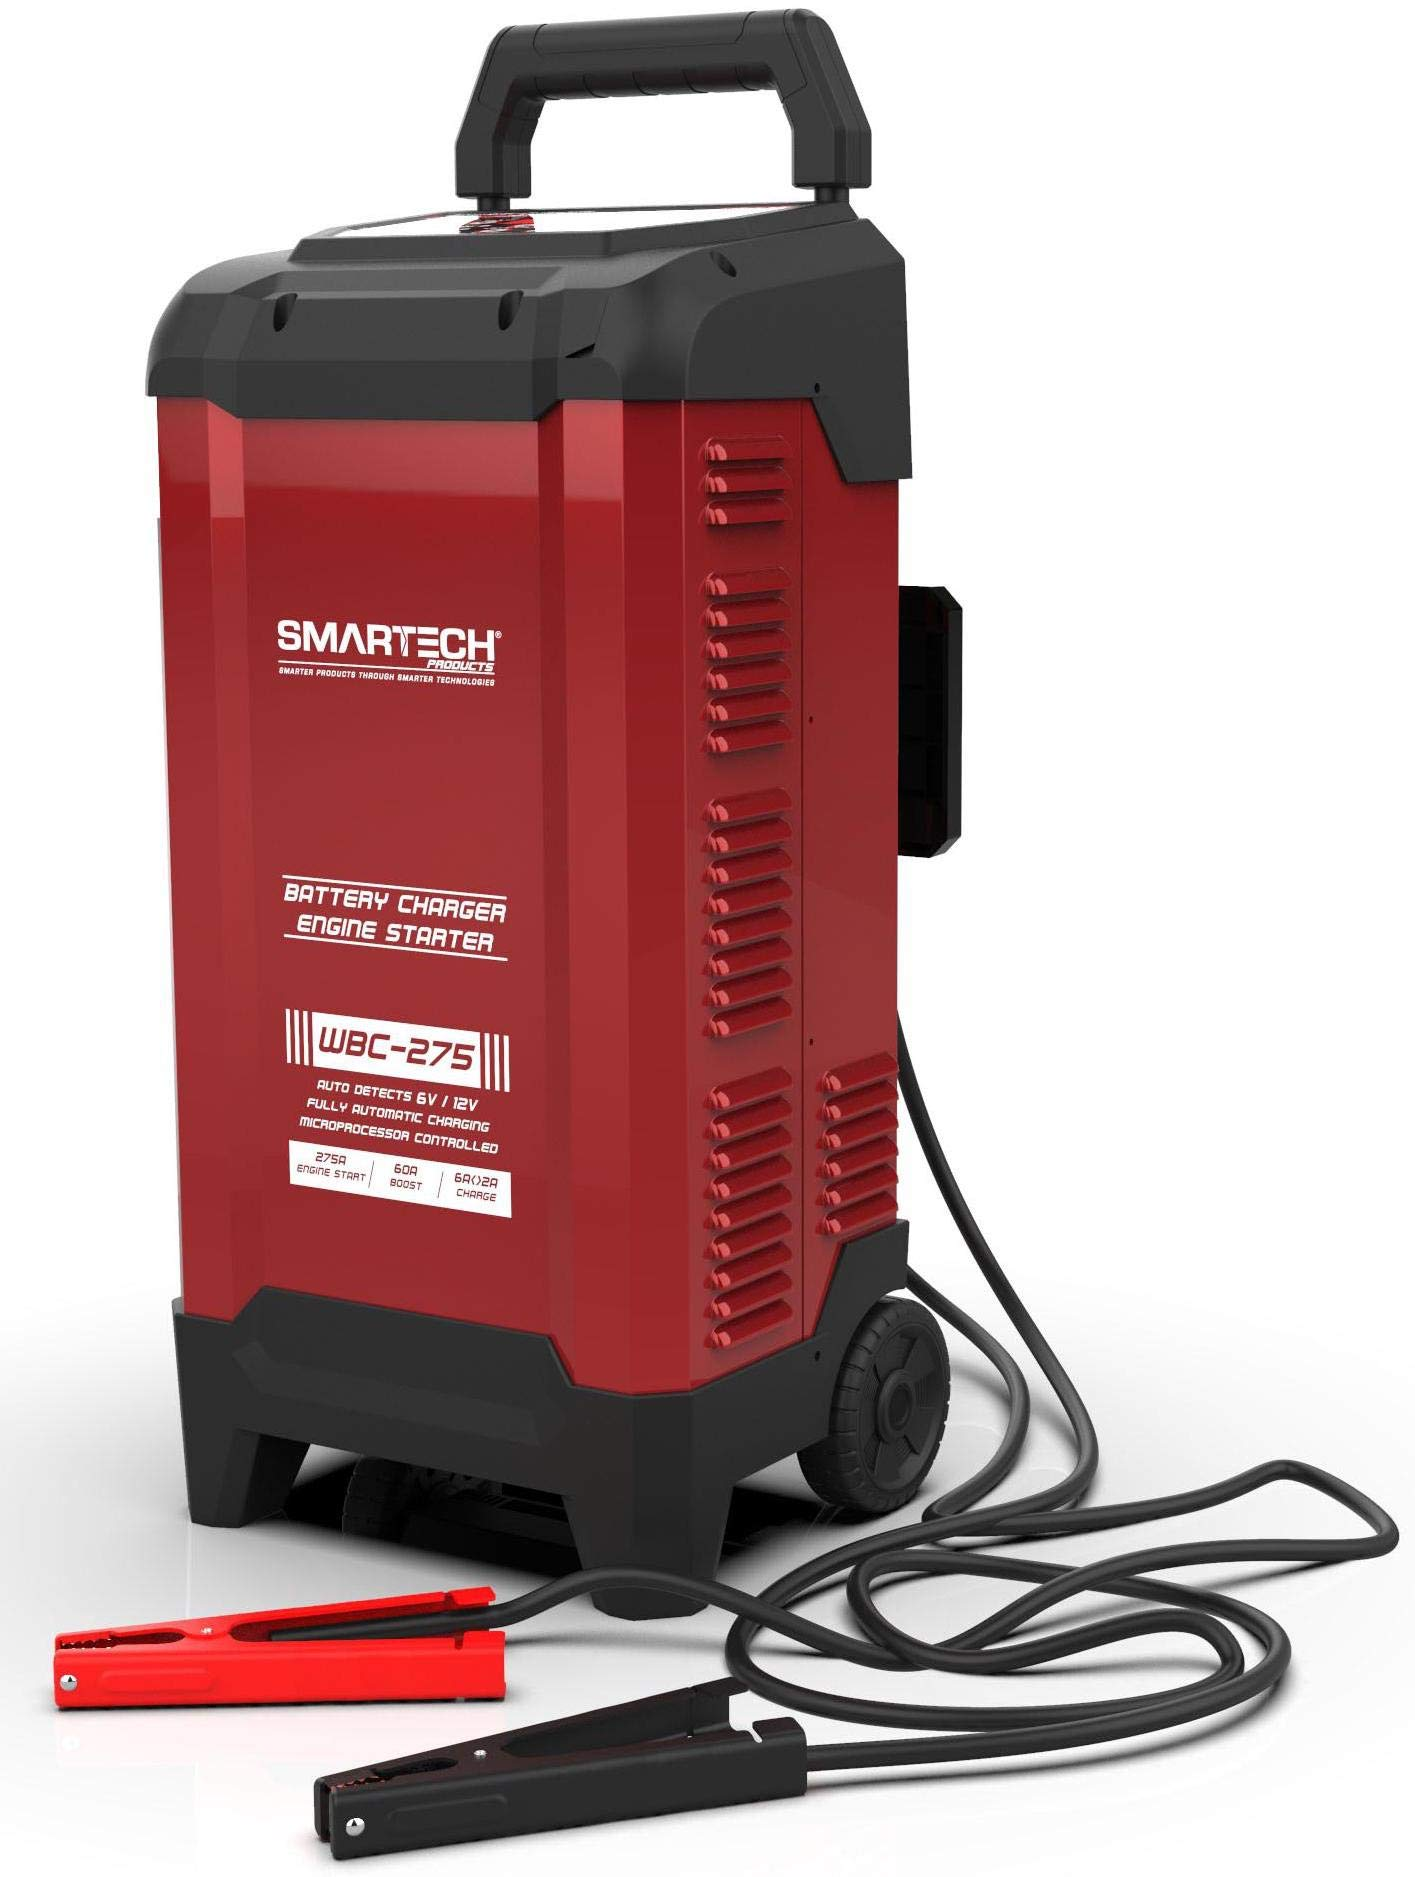 Smartech WBC-275 6V/12V Wheel Automotive Battery Charger | 275A Engine Start | 60A Boost | 6A<>2A Charge | Digital Display - Built in Microprocessor for Safe Charging